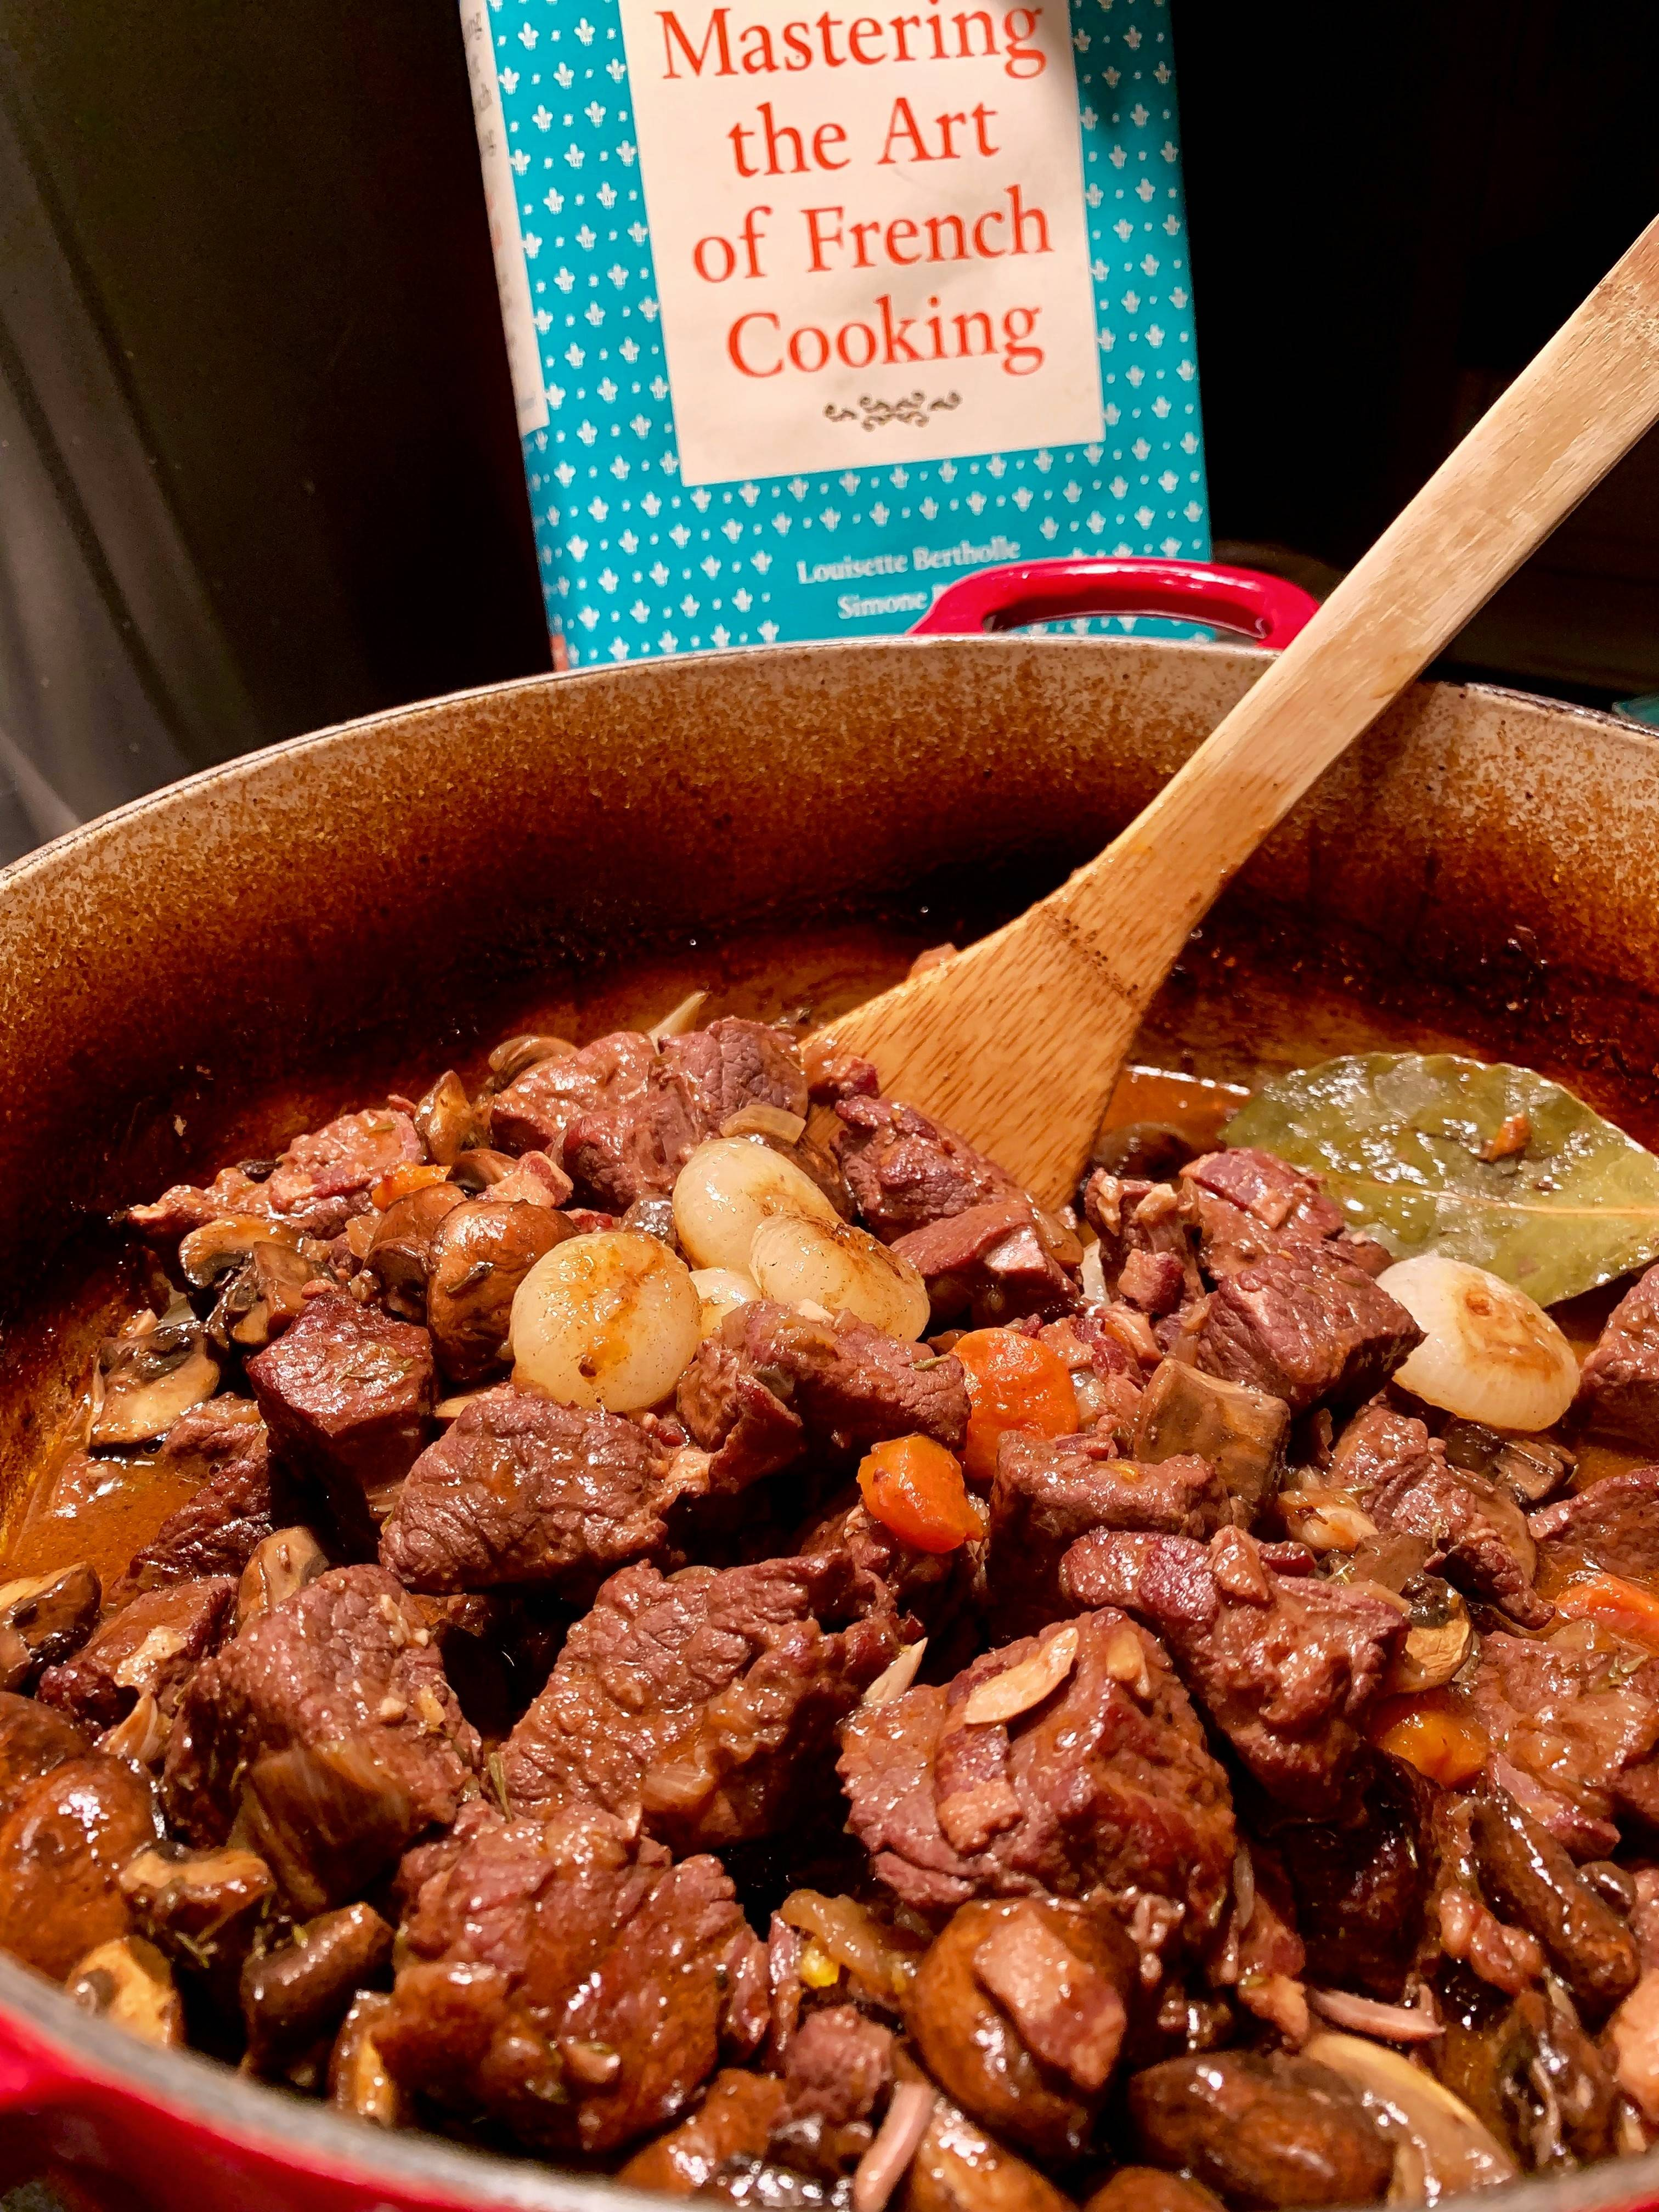 Finished and ready for plating, Julia Child's boeuf bourguinon.